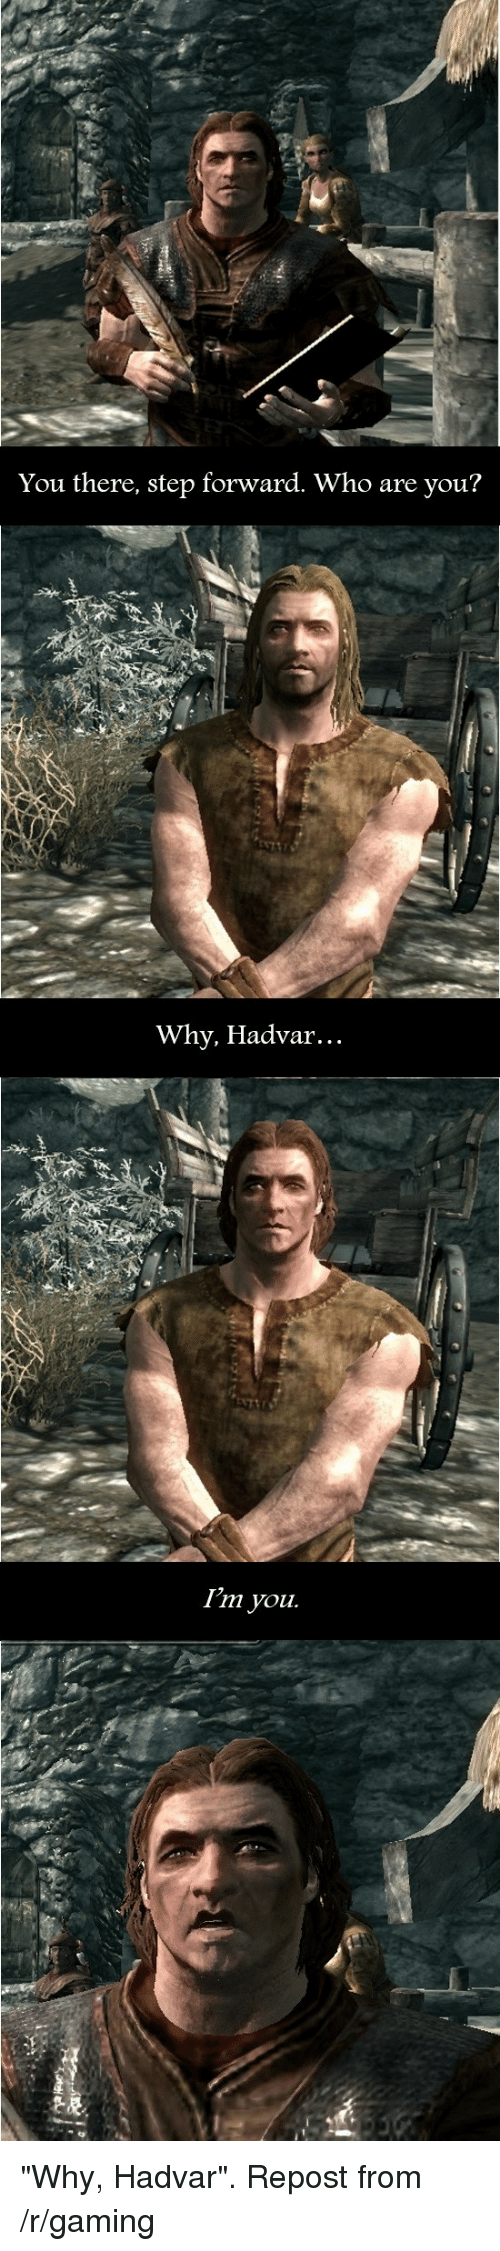 "Hand - You there, step forward. Who are you? Why, Hadvar... Г'т you. ""Why, Hadvar"". Repost from /r/gaming"